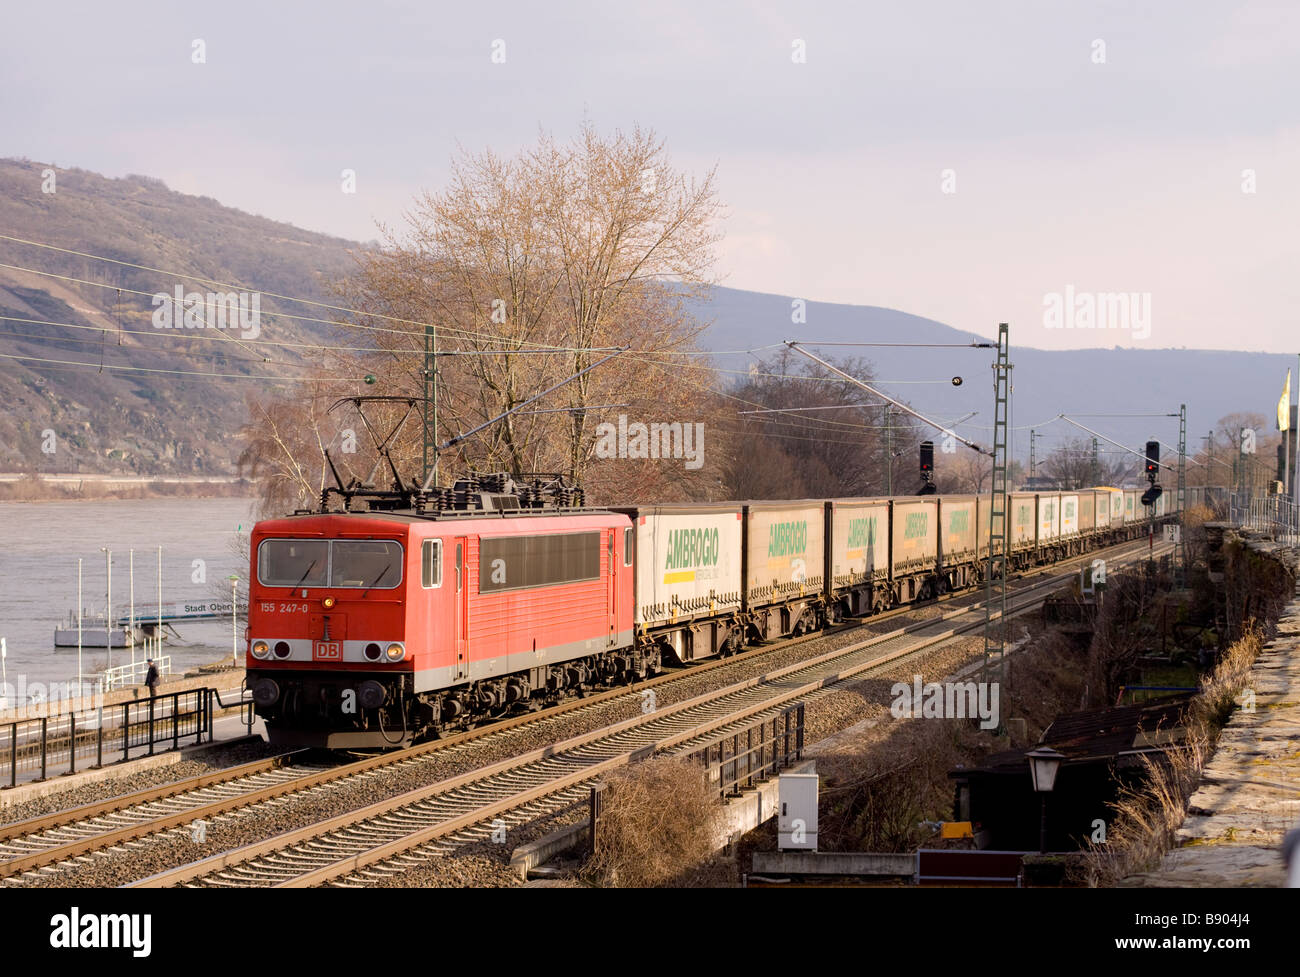 DB class 155 electric locomotive No 155 247-0 with an intermodal freight at Oberwesel - Stock Image